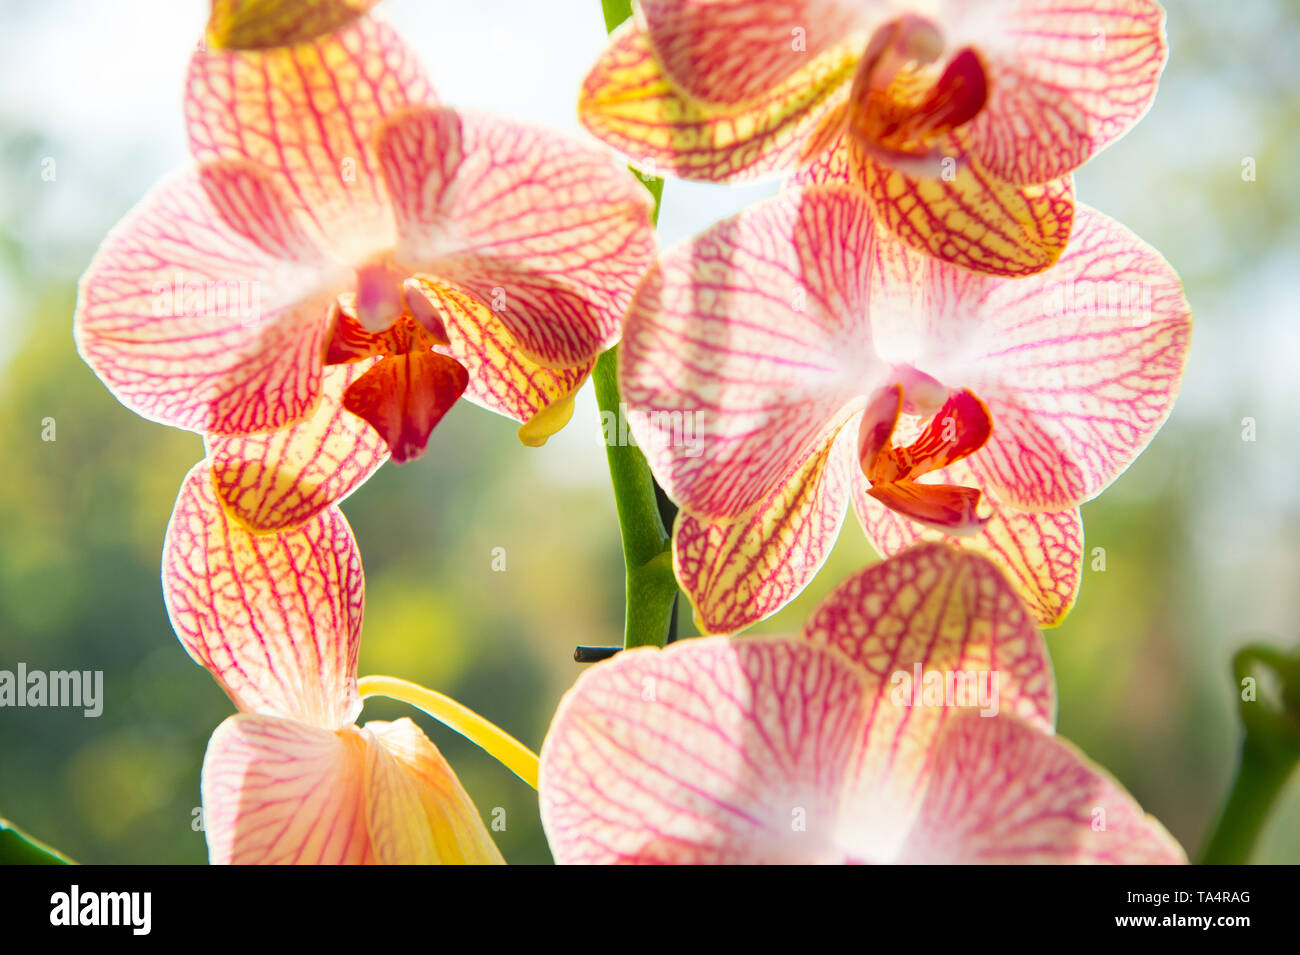 Orchids gorgeous blossom close up. Orchid flower pink and yellow bloom. Phalaenopsis orchid. Botany concept. Orchid growing tips. How take care orchid plants indoors. Most commonly grown house plants. - Stock Image